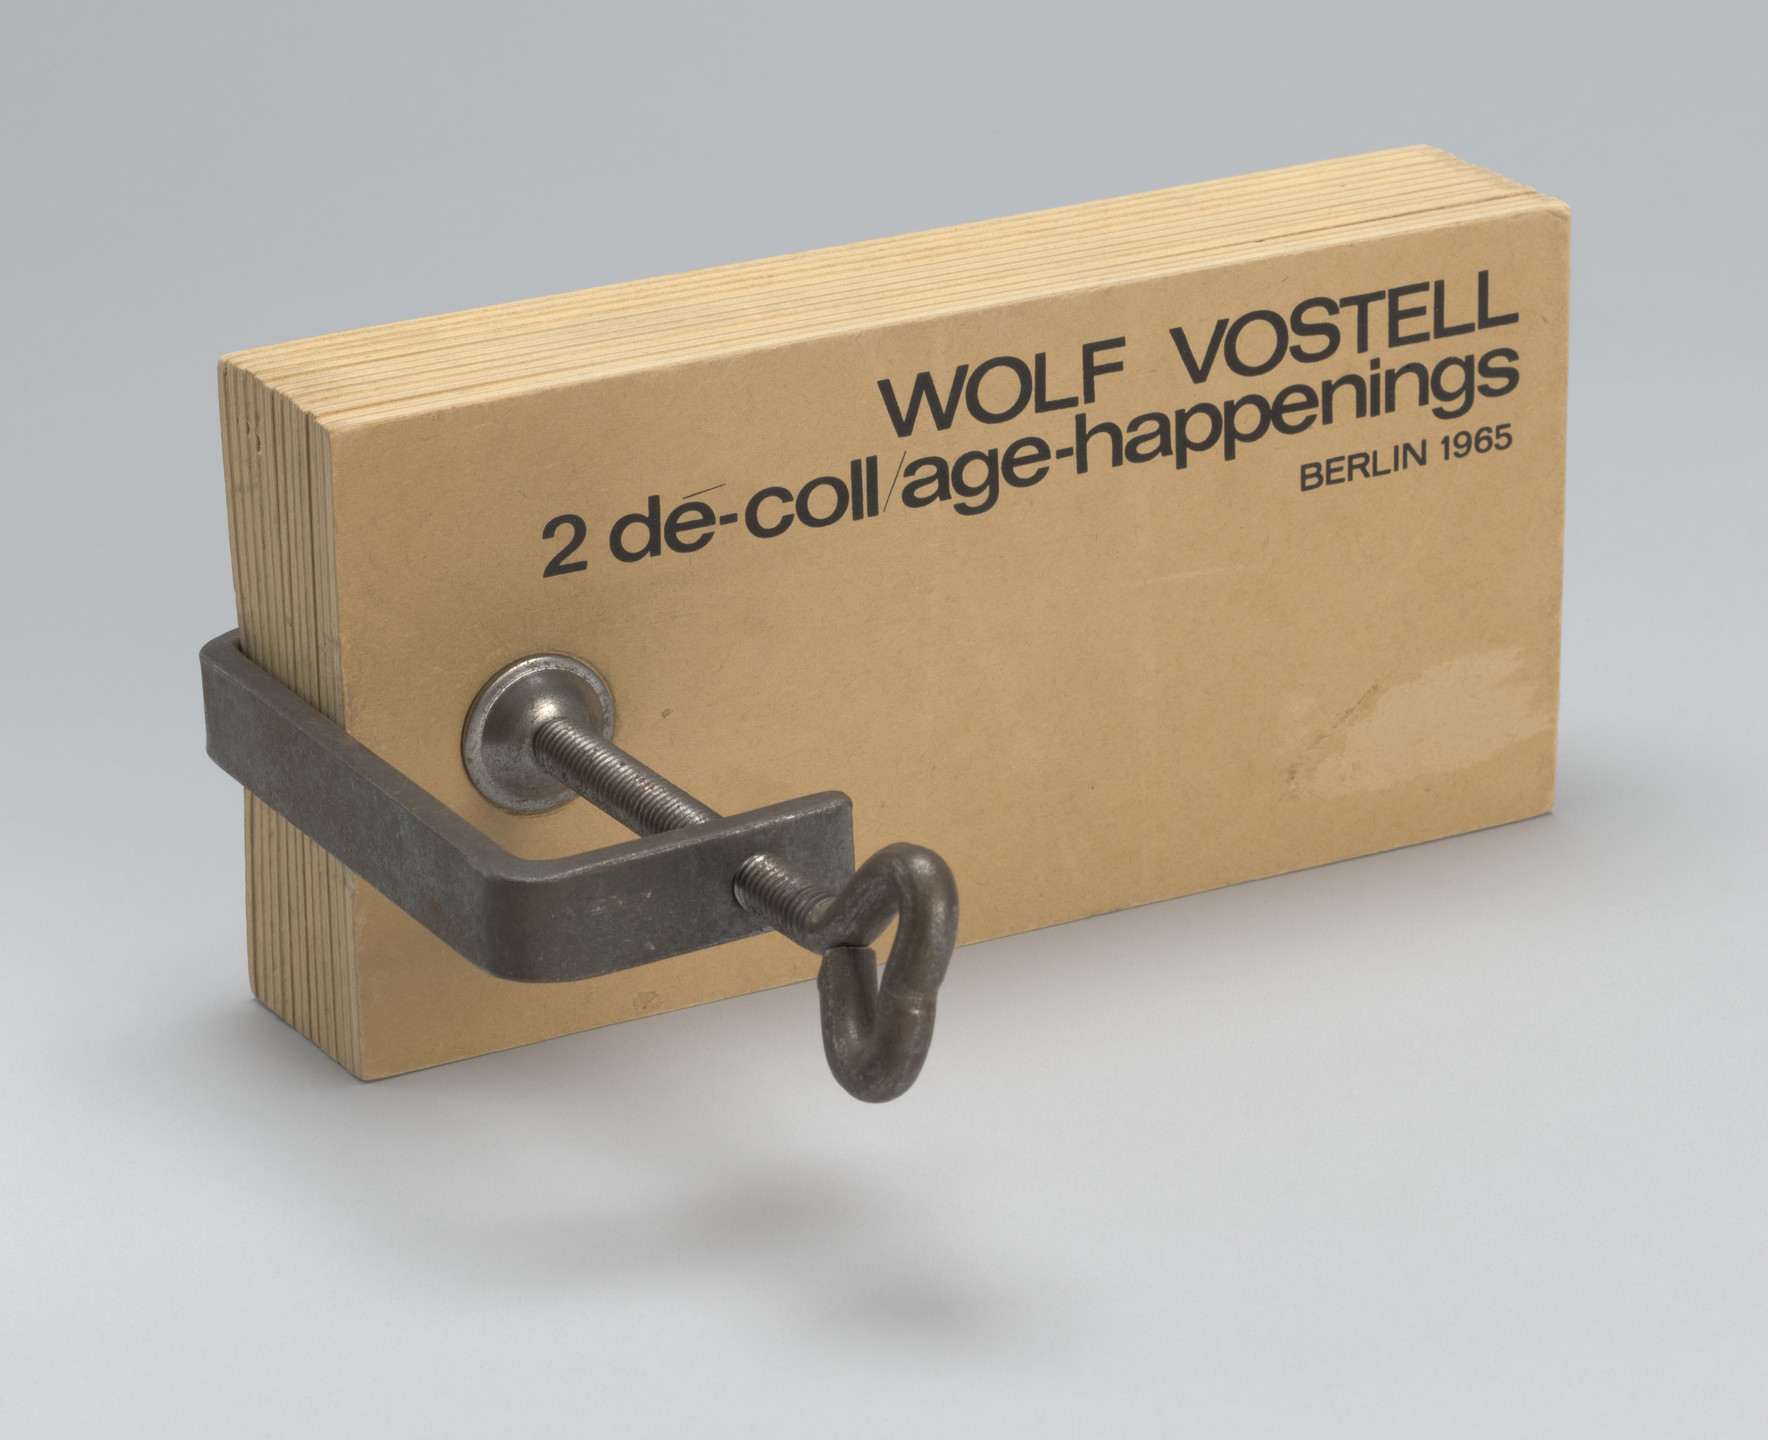 Wolf Vostell. 2 de-coll/age-happenings. 1965